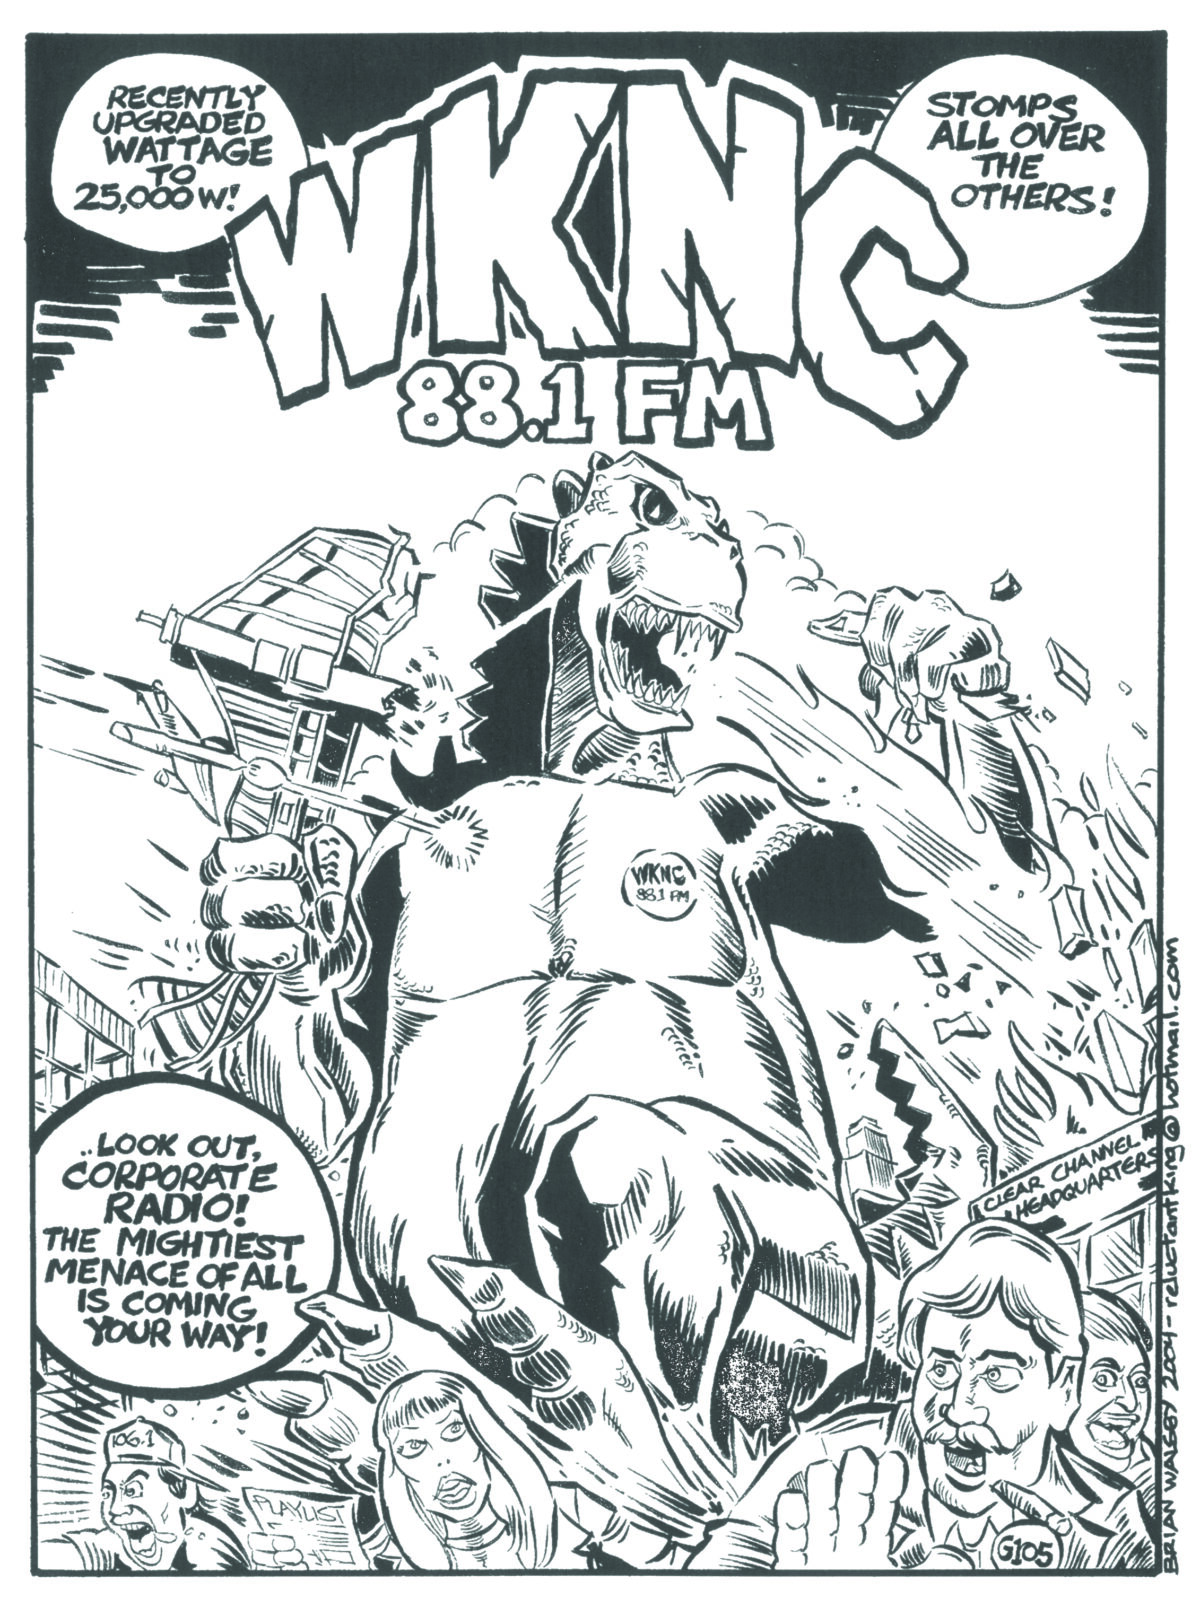 Cartoonist Brian Walsby designed this ad for the April 2004 Raleigh Hatchet magazine. WKNC purchased usage rights in 2014.